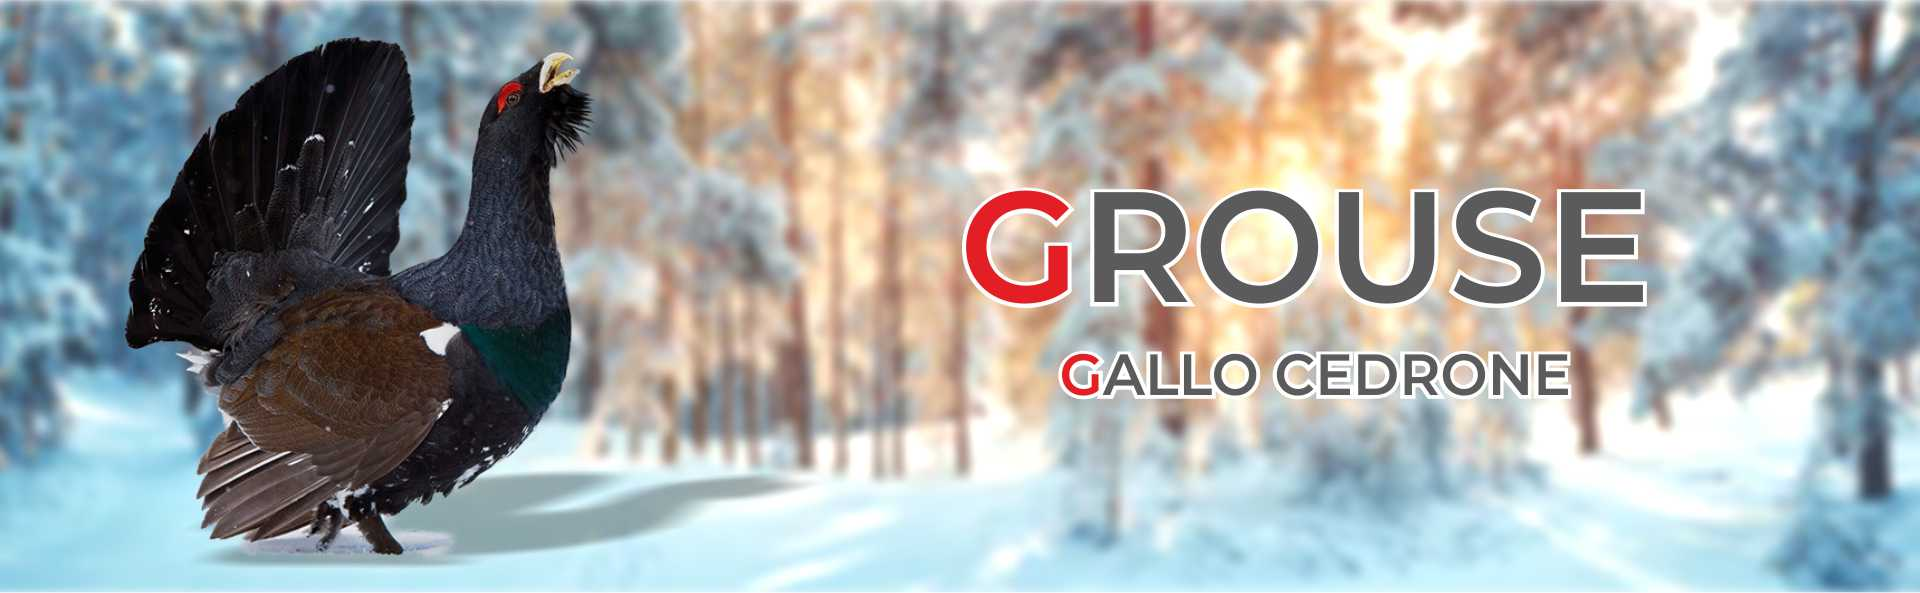 Grouse Creek, calzature e abbigliamento per l'outdoor banner1920